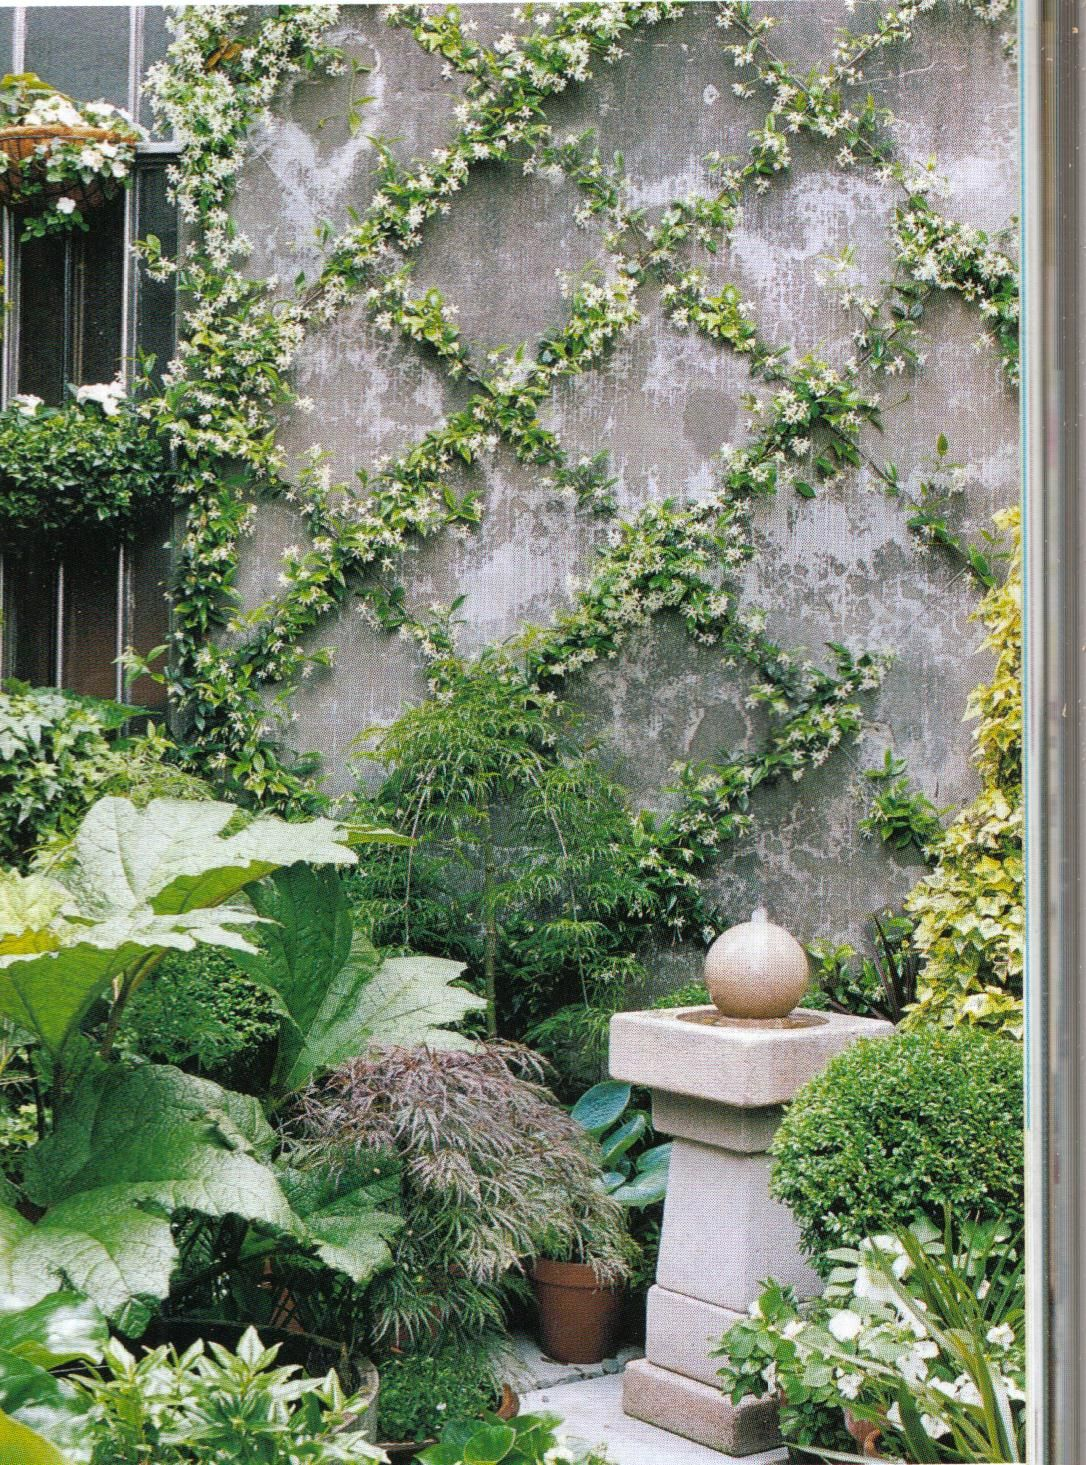 Zig zag star jasmine on a wall garden designs for Landscaping courses nz